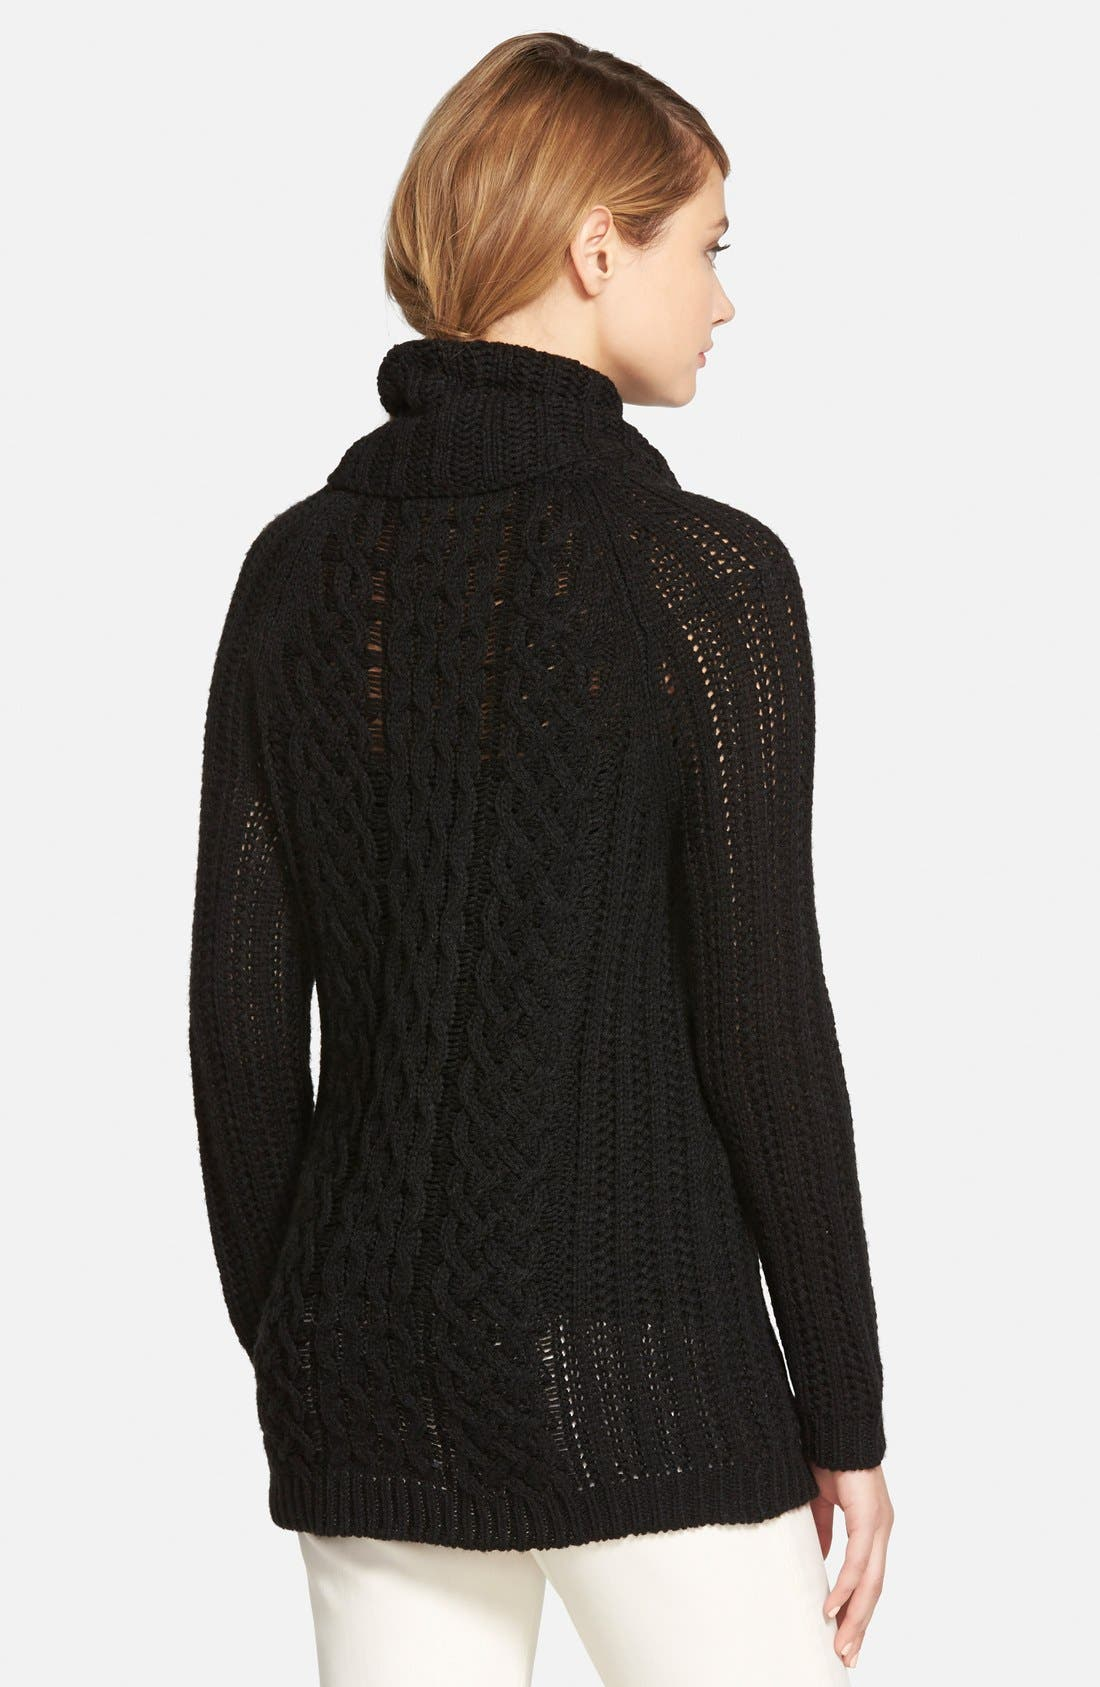 'Sleepy Hollow' Turtleneck Sweater,                             Alternate thumbnail 2, color,                             001